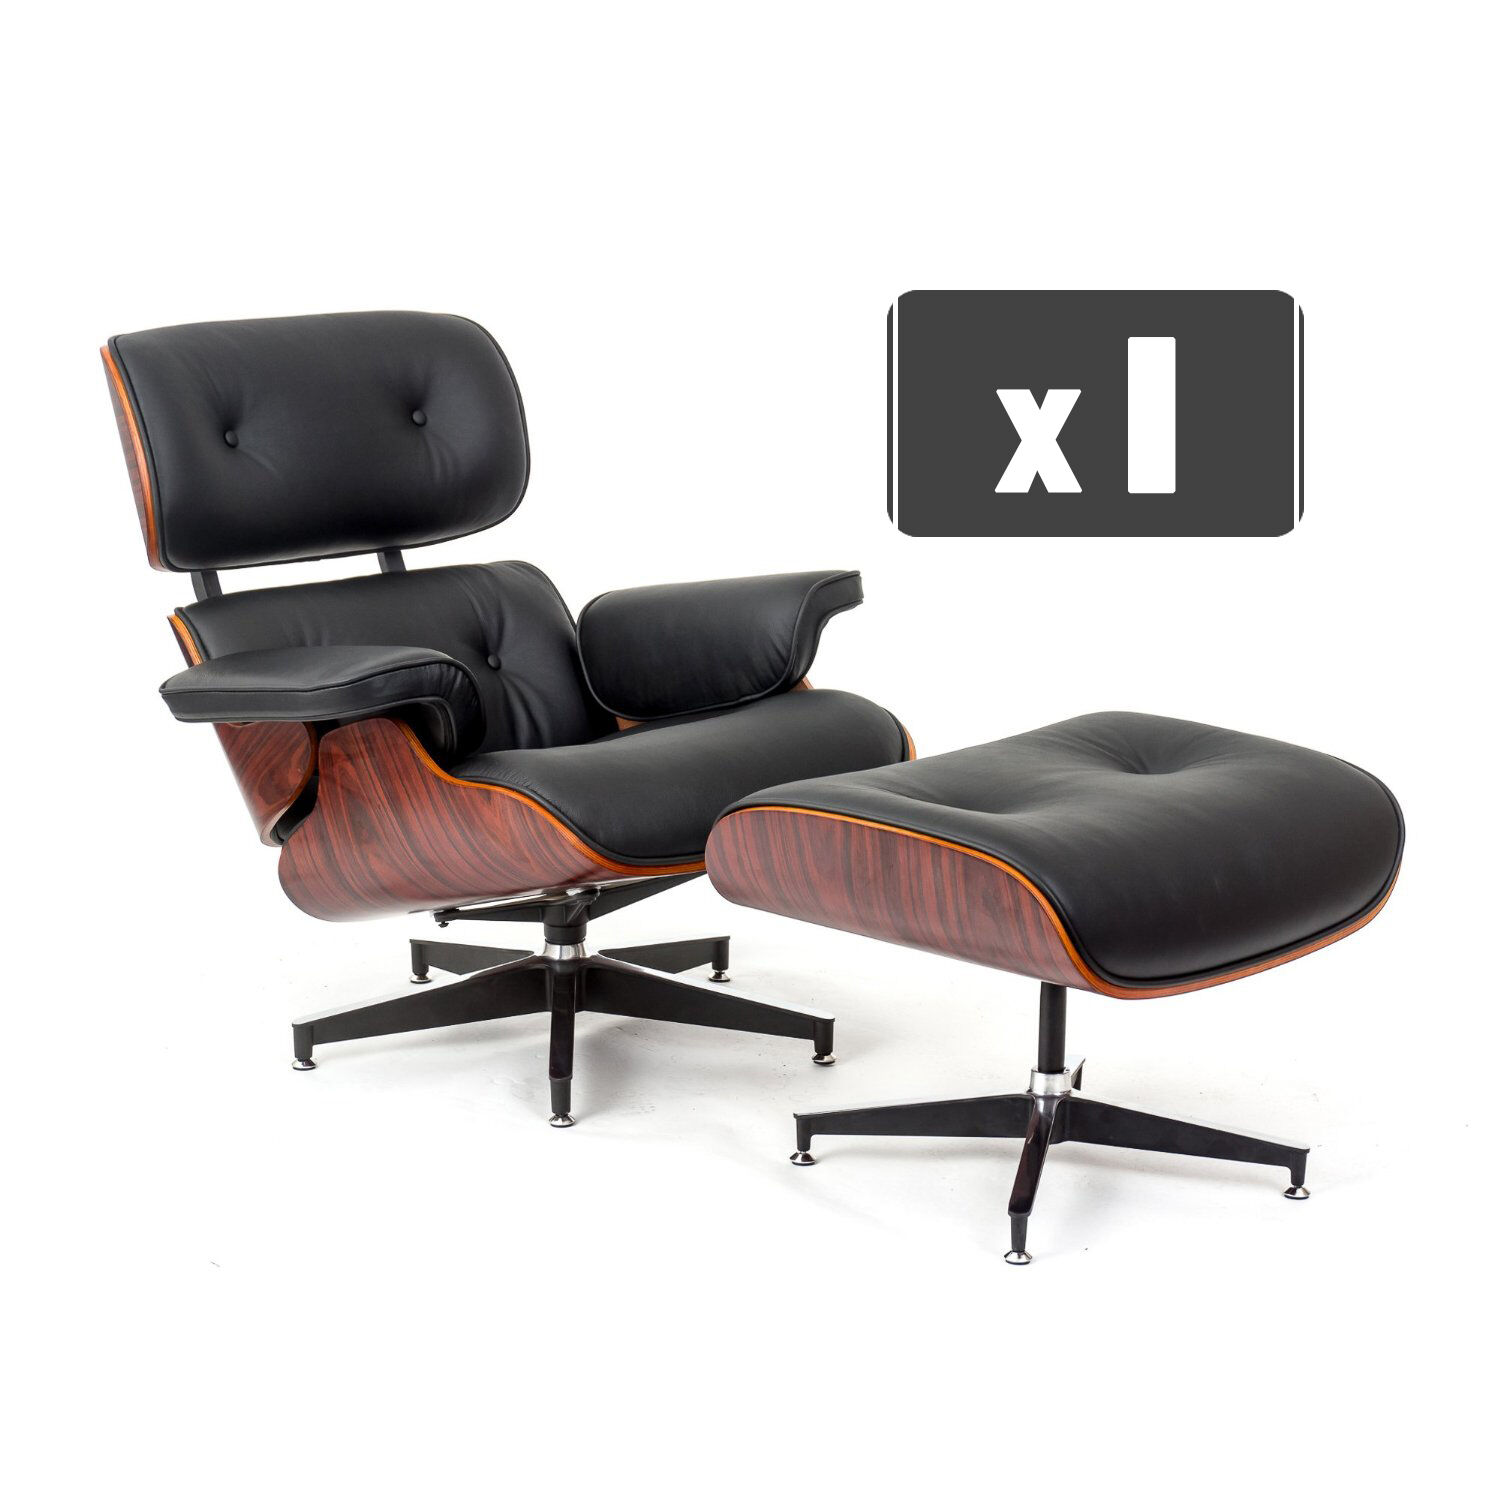 Replica charles eames lounge chair ottoman in black for Chaise imitation charles eames